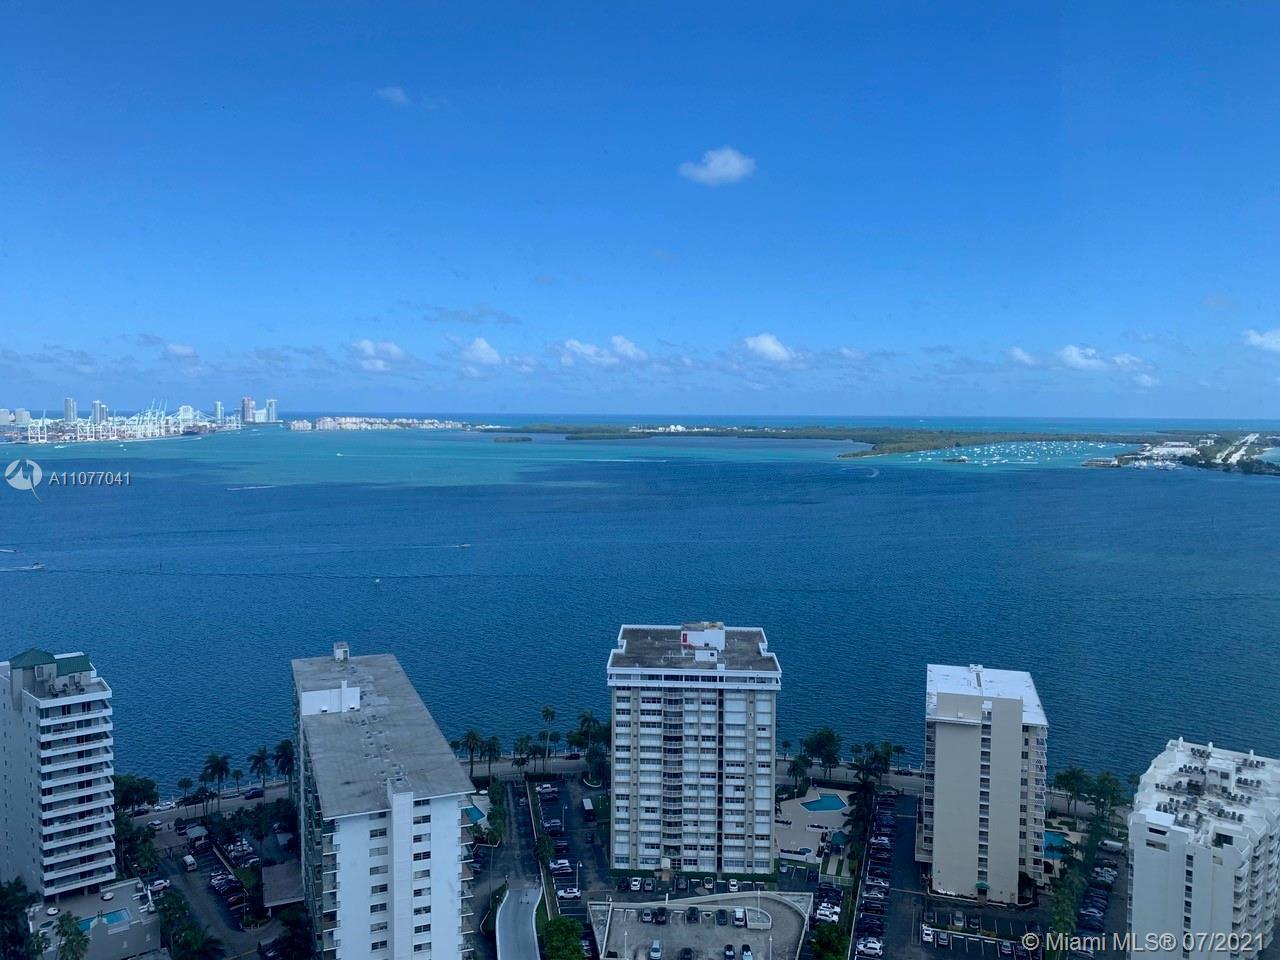 LUXURIOUS FOUR SEASONS FURNISHED 2 BED/2 BATH CORNER UNIT WITH UNOBSTRUCTED VIEWS OF THE BAY, OCEAN